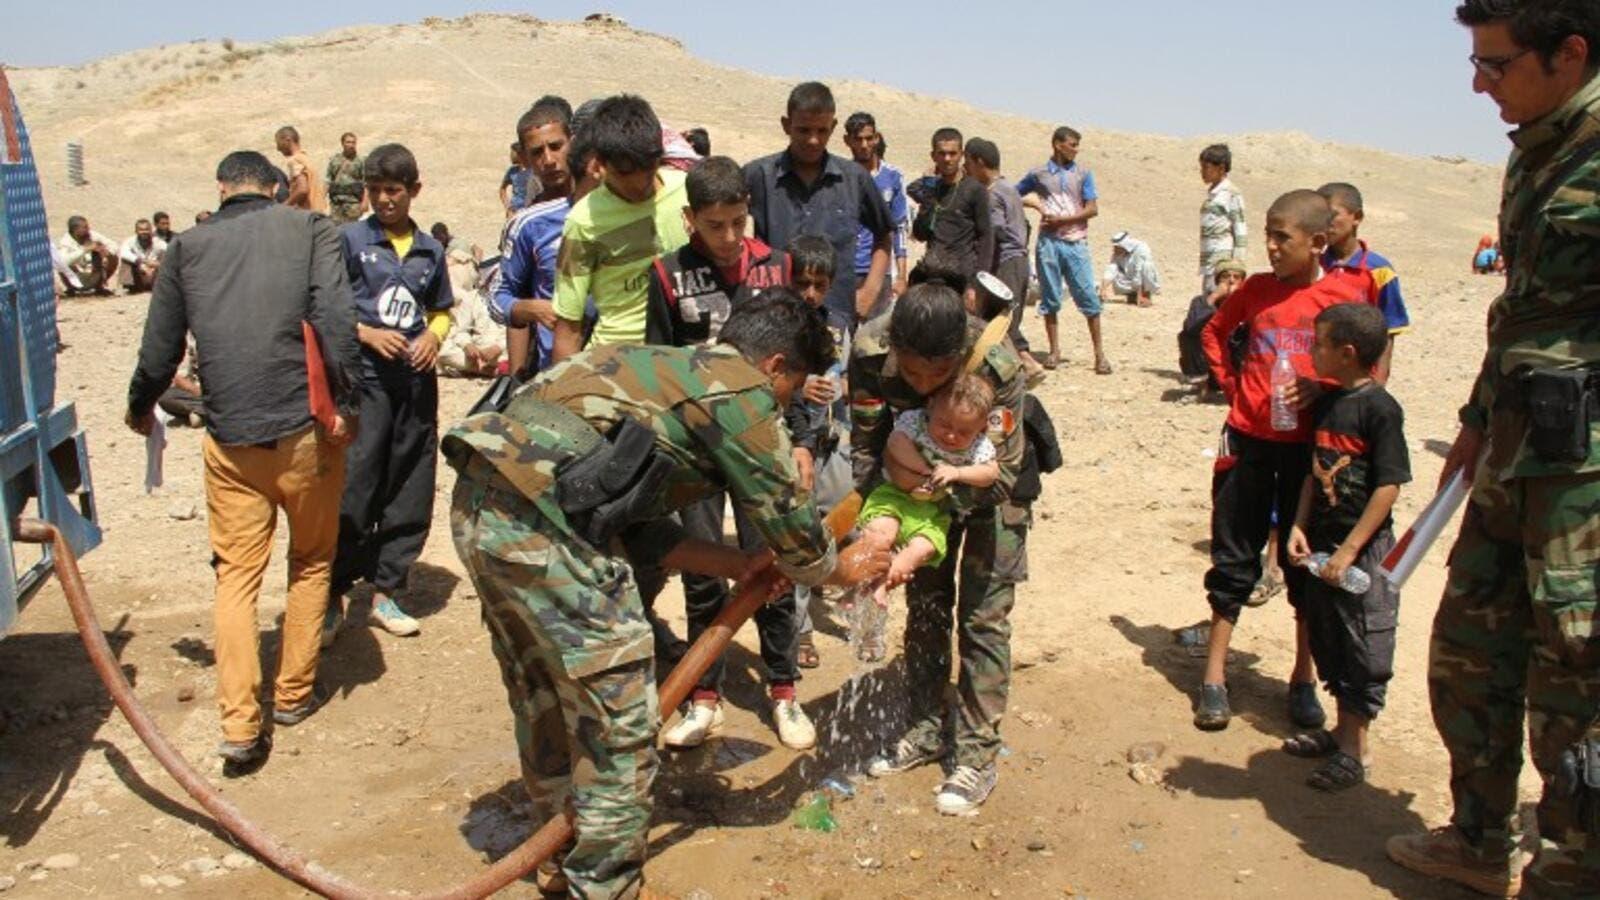 Peshmerga fighters wash the feet of a displaced Iraqi child from the northern village of Hawija as families rest under the protection of Peshmerga forces after fleeing from Daesh on August 17, 2016. (AFP/Marwan Ibrahim)